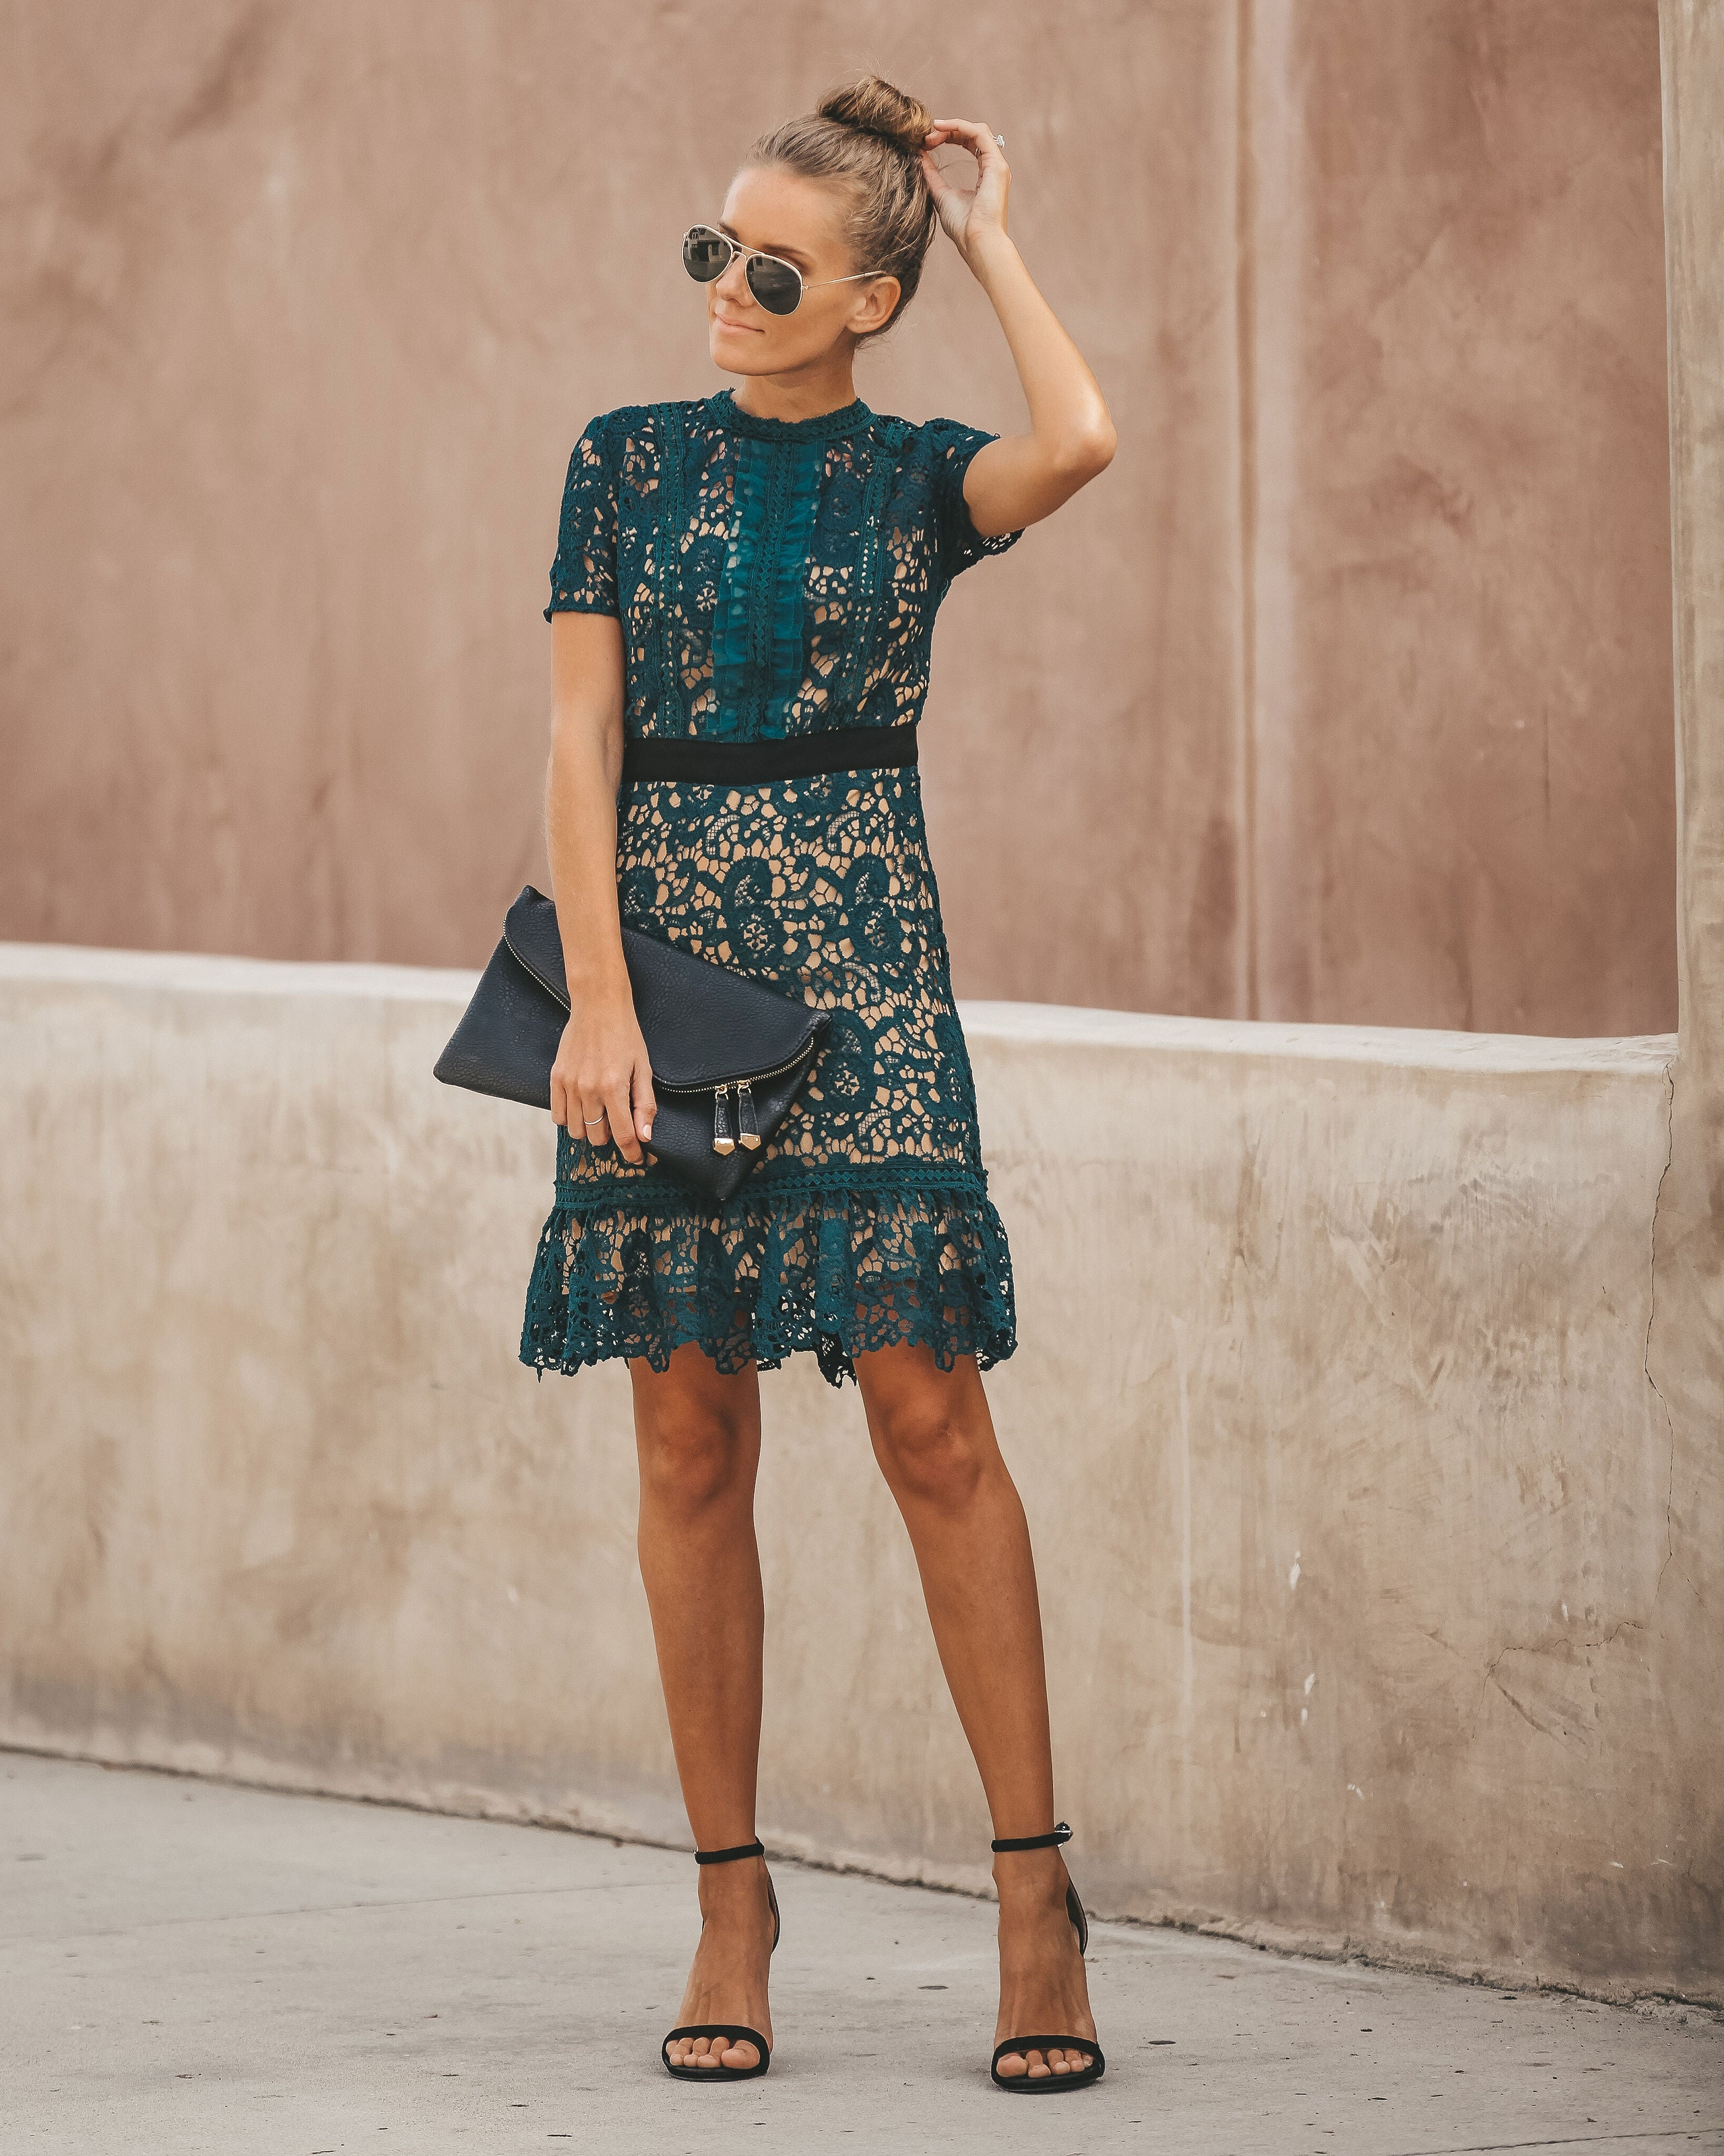 Teal dark lace dress forecasting to wear in summer in 2019